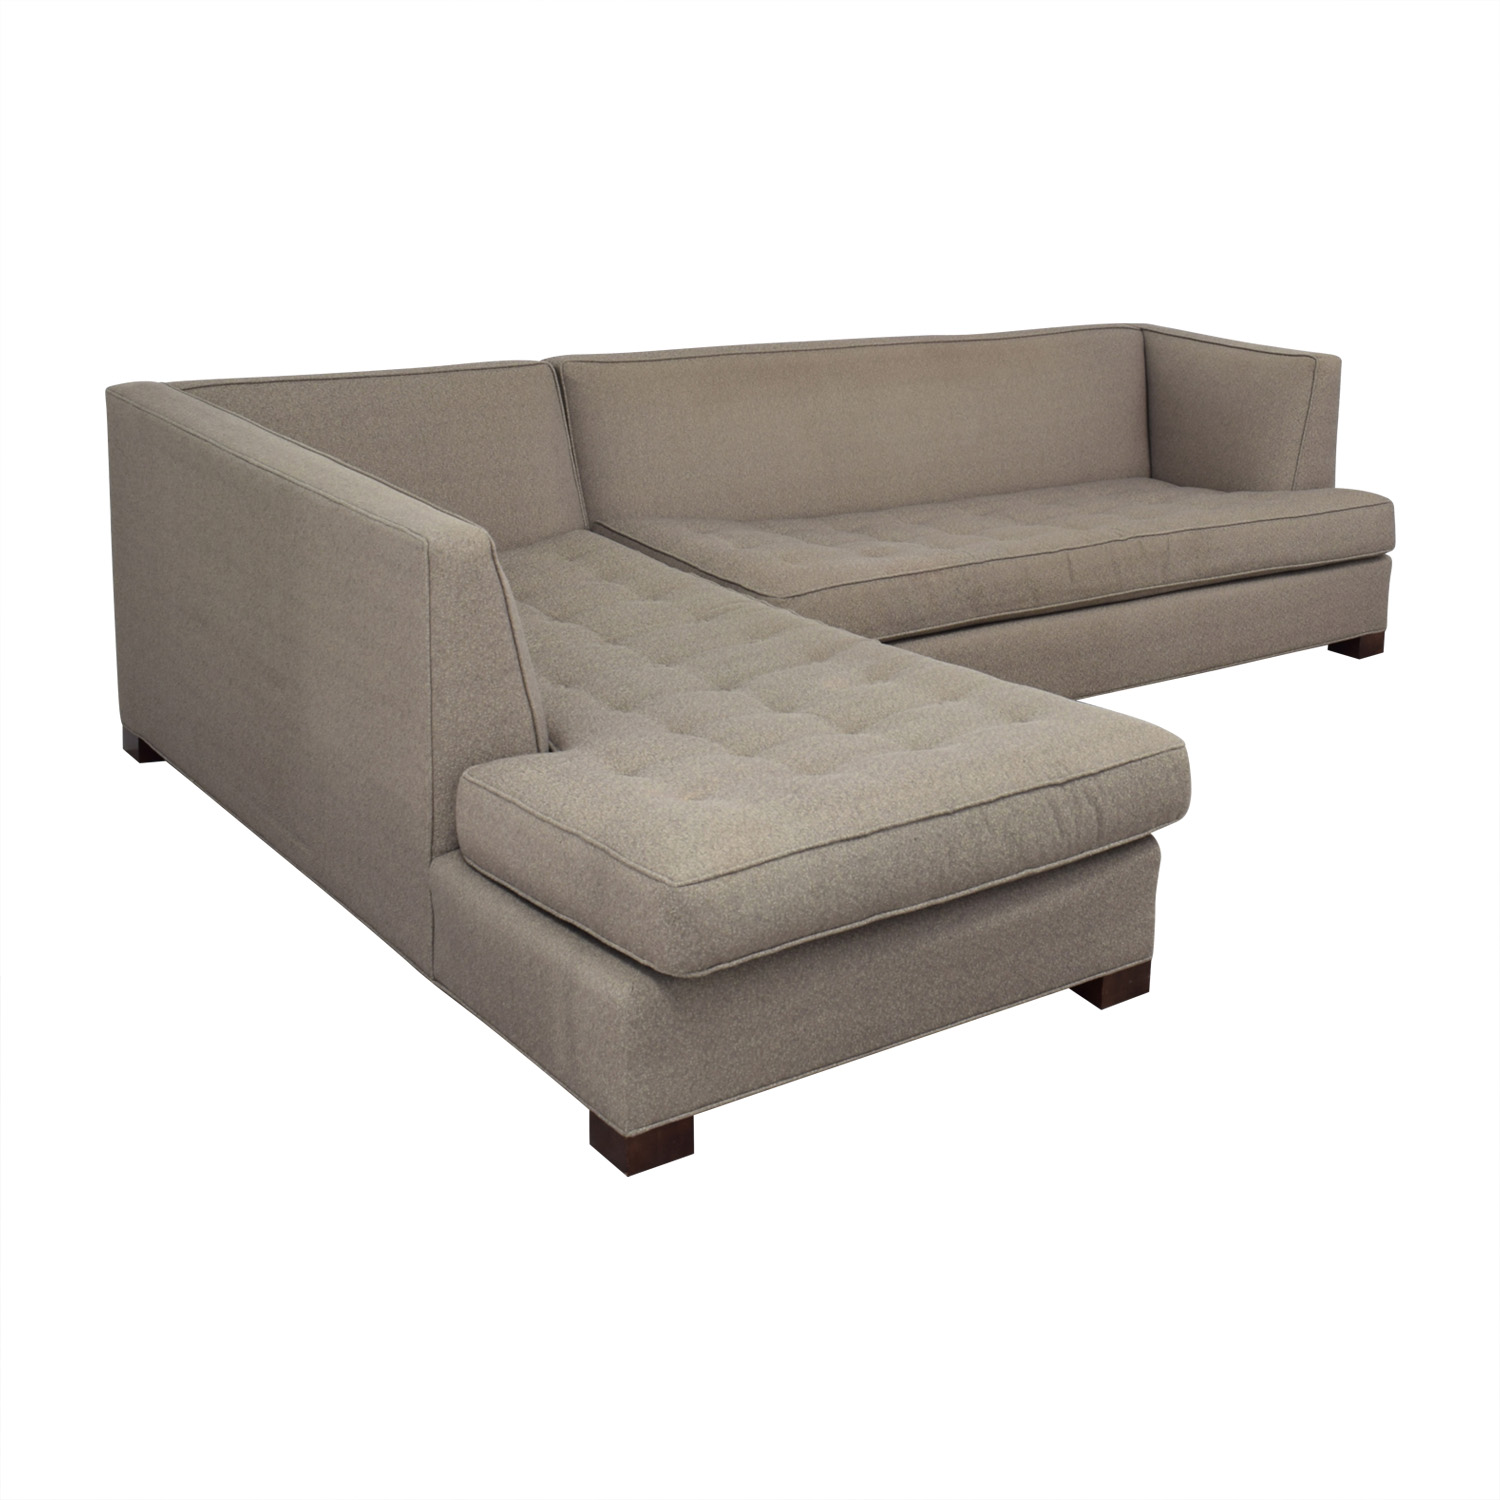 Mitchell Gold + Bob Williams Mitchell Gold + Bob Williams Beige Tufted Chaise Sectional price